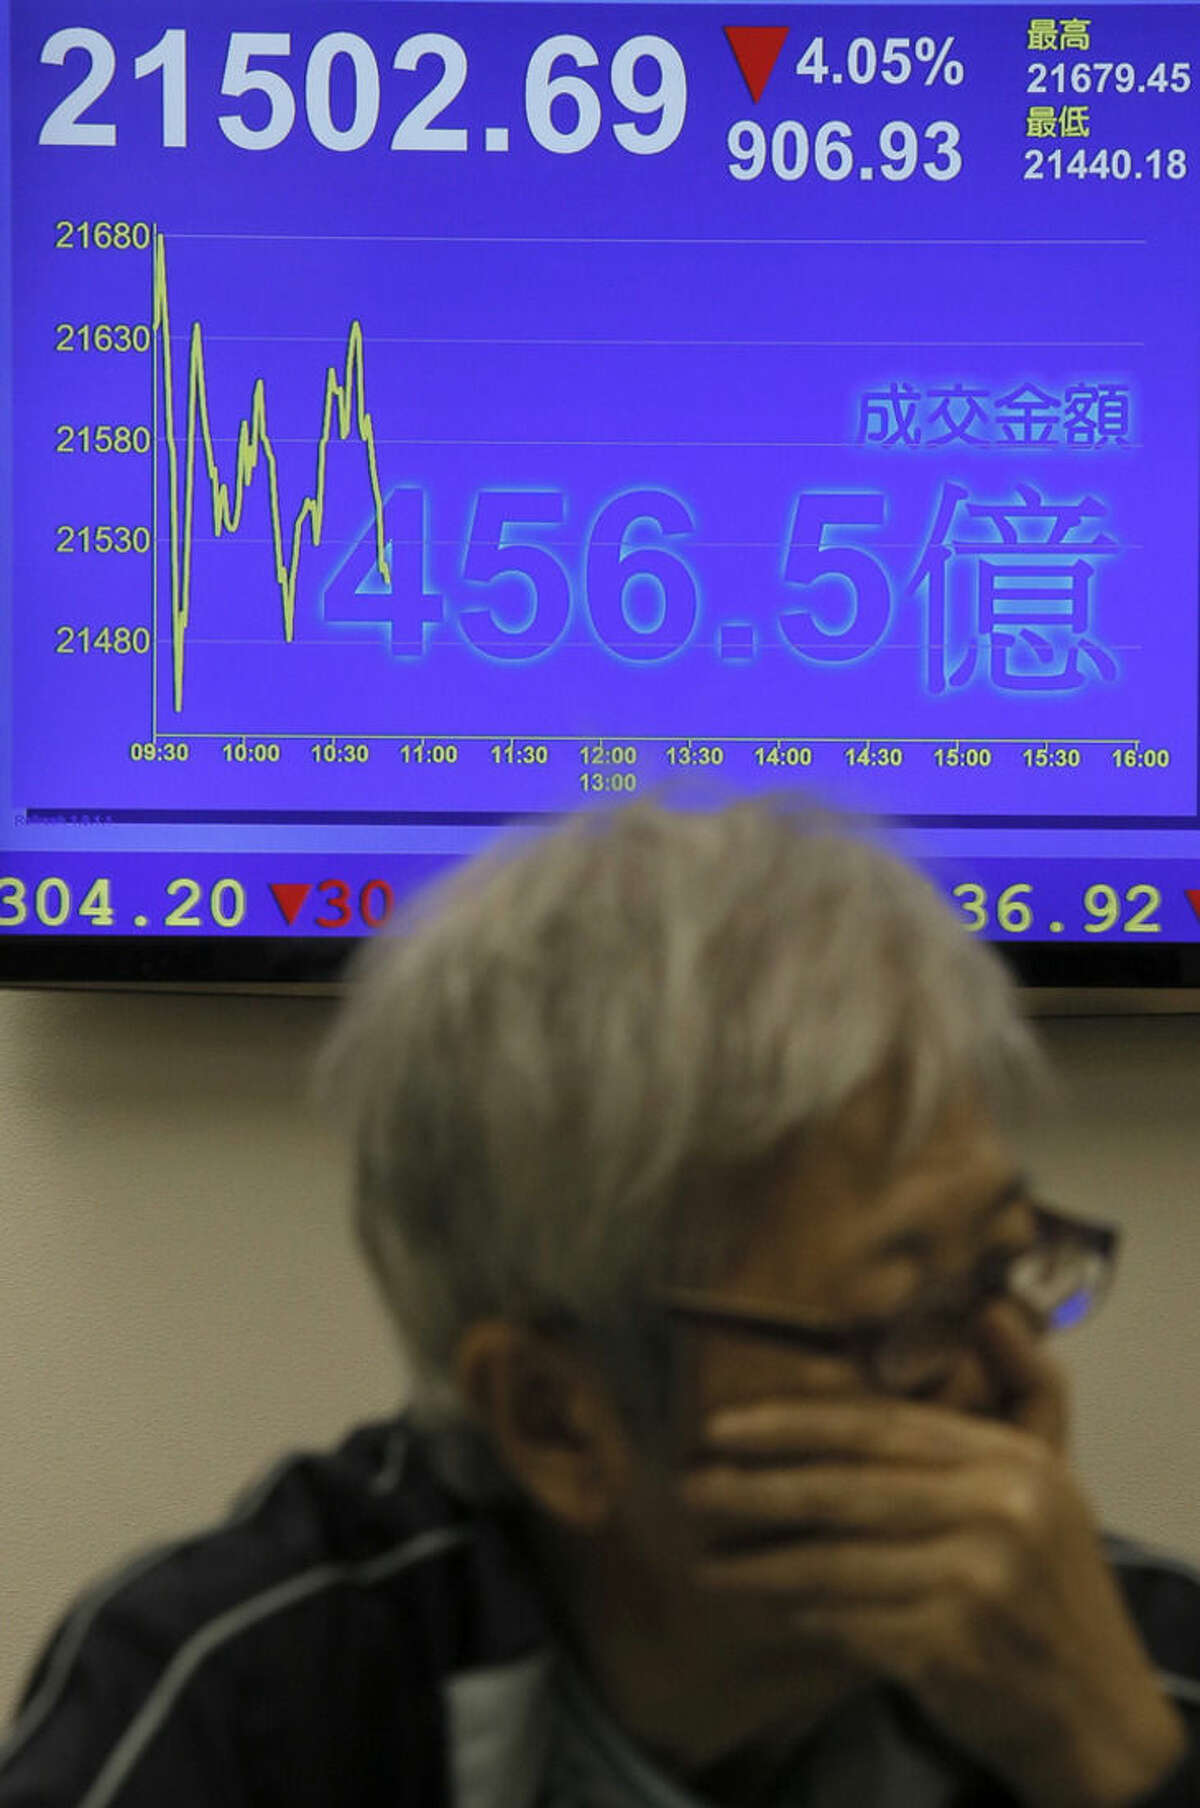 A woman looks at stock index near an electronic board showing the Hong Kong share index at a security company in Hong Kong, Monday, Aug. 24, 2015. Stocks got a dismal start to the week in Asia, with China's main index losing up to 8.6 percent Monday as investors shaken by the sell-off last week on Wall Street unloaded shares in practically every sector. (AP Photo/Vincent Yu)